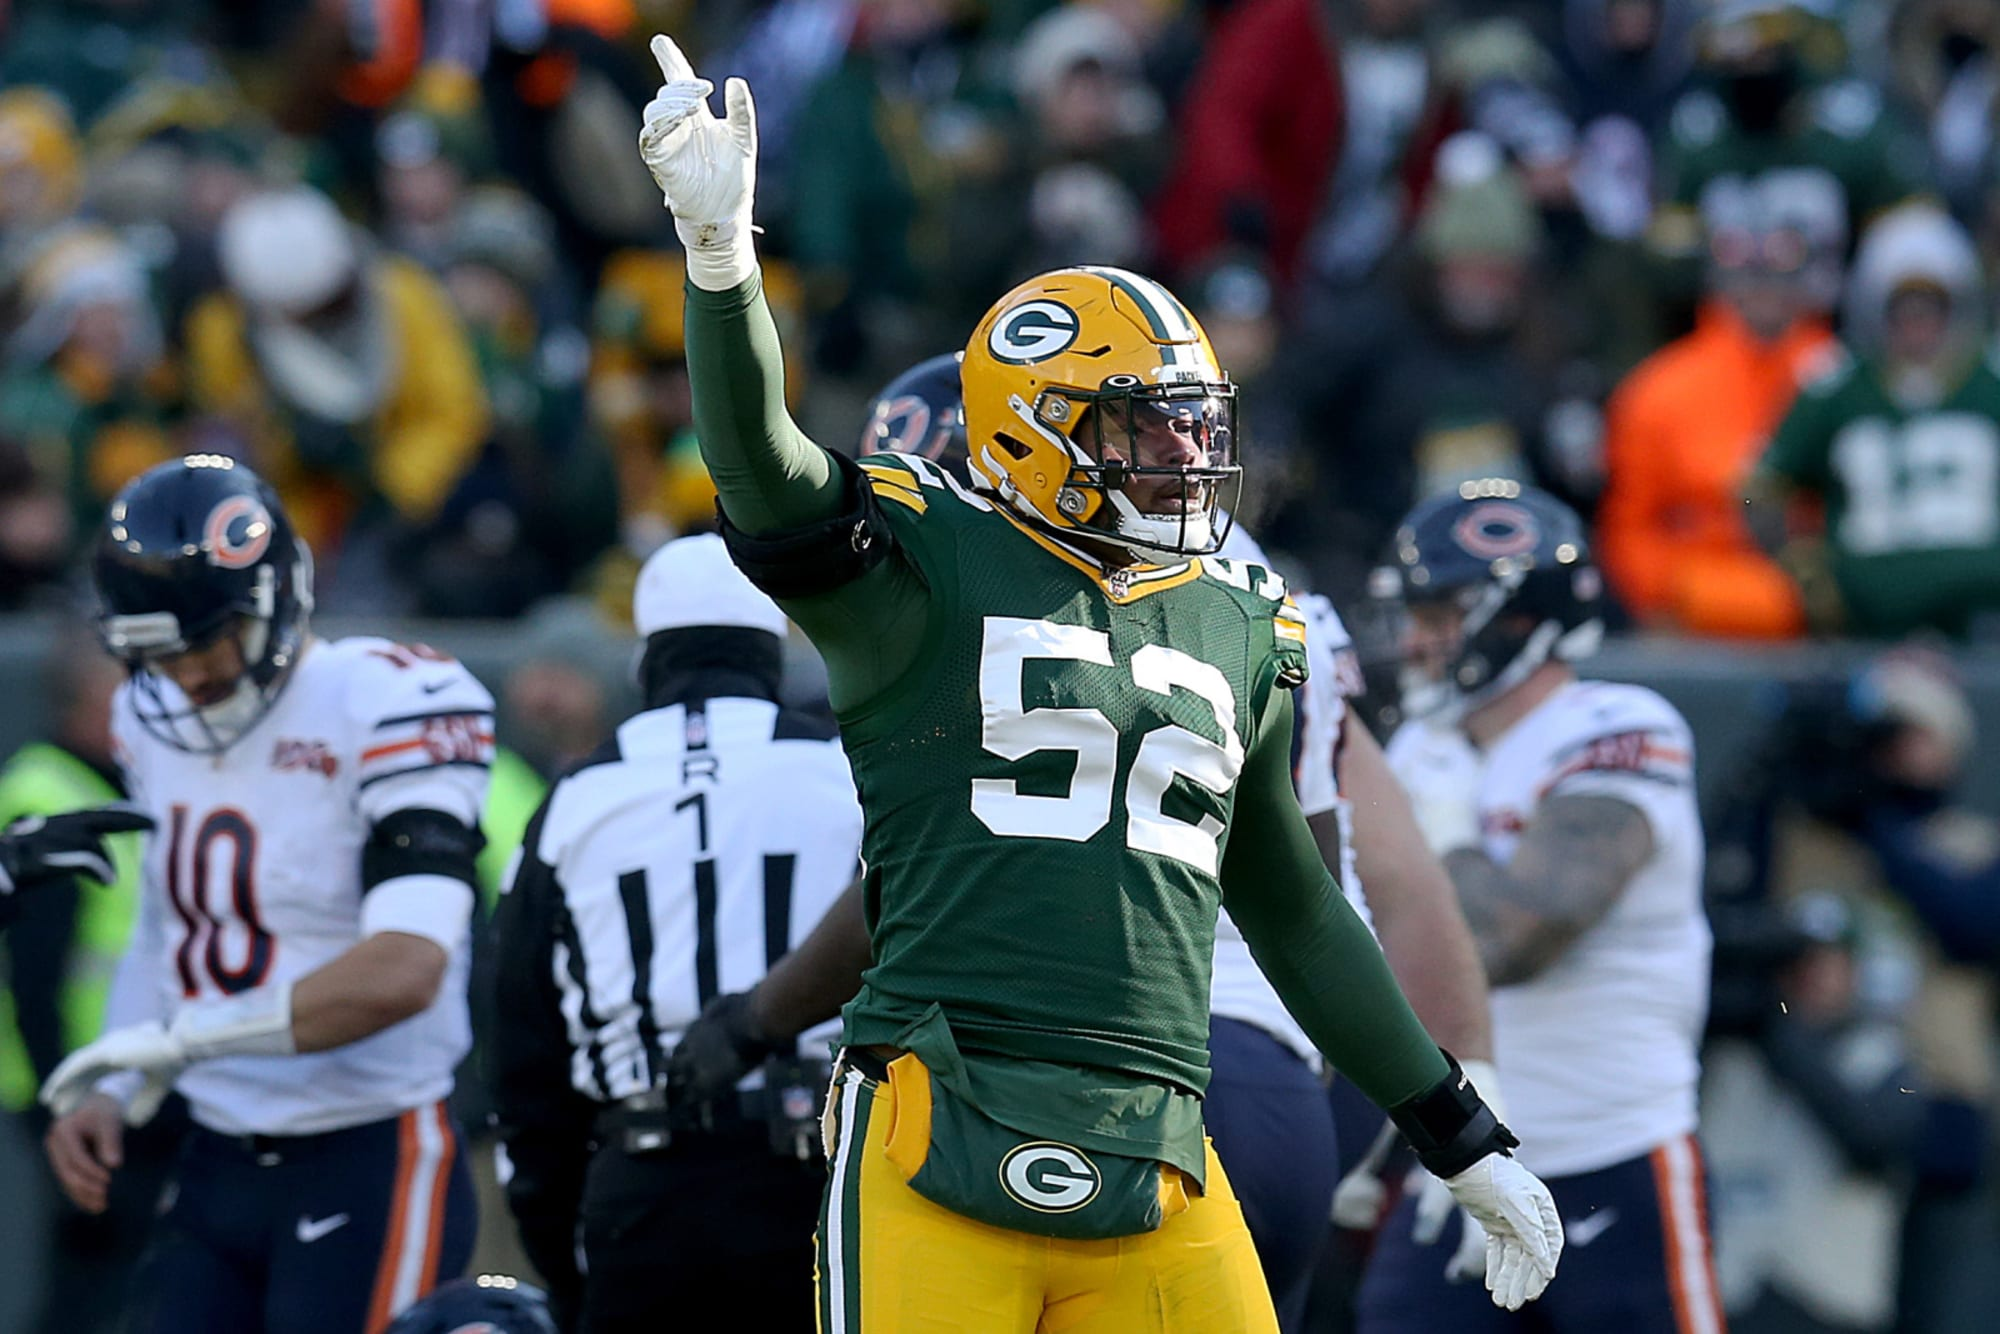 Packers 2020 roster preview: Can Rashan Gary make jump in year two?